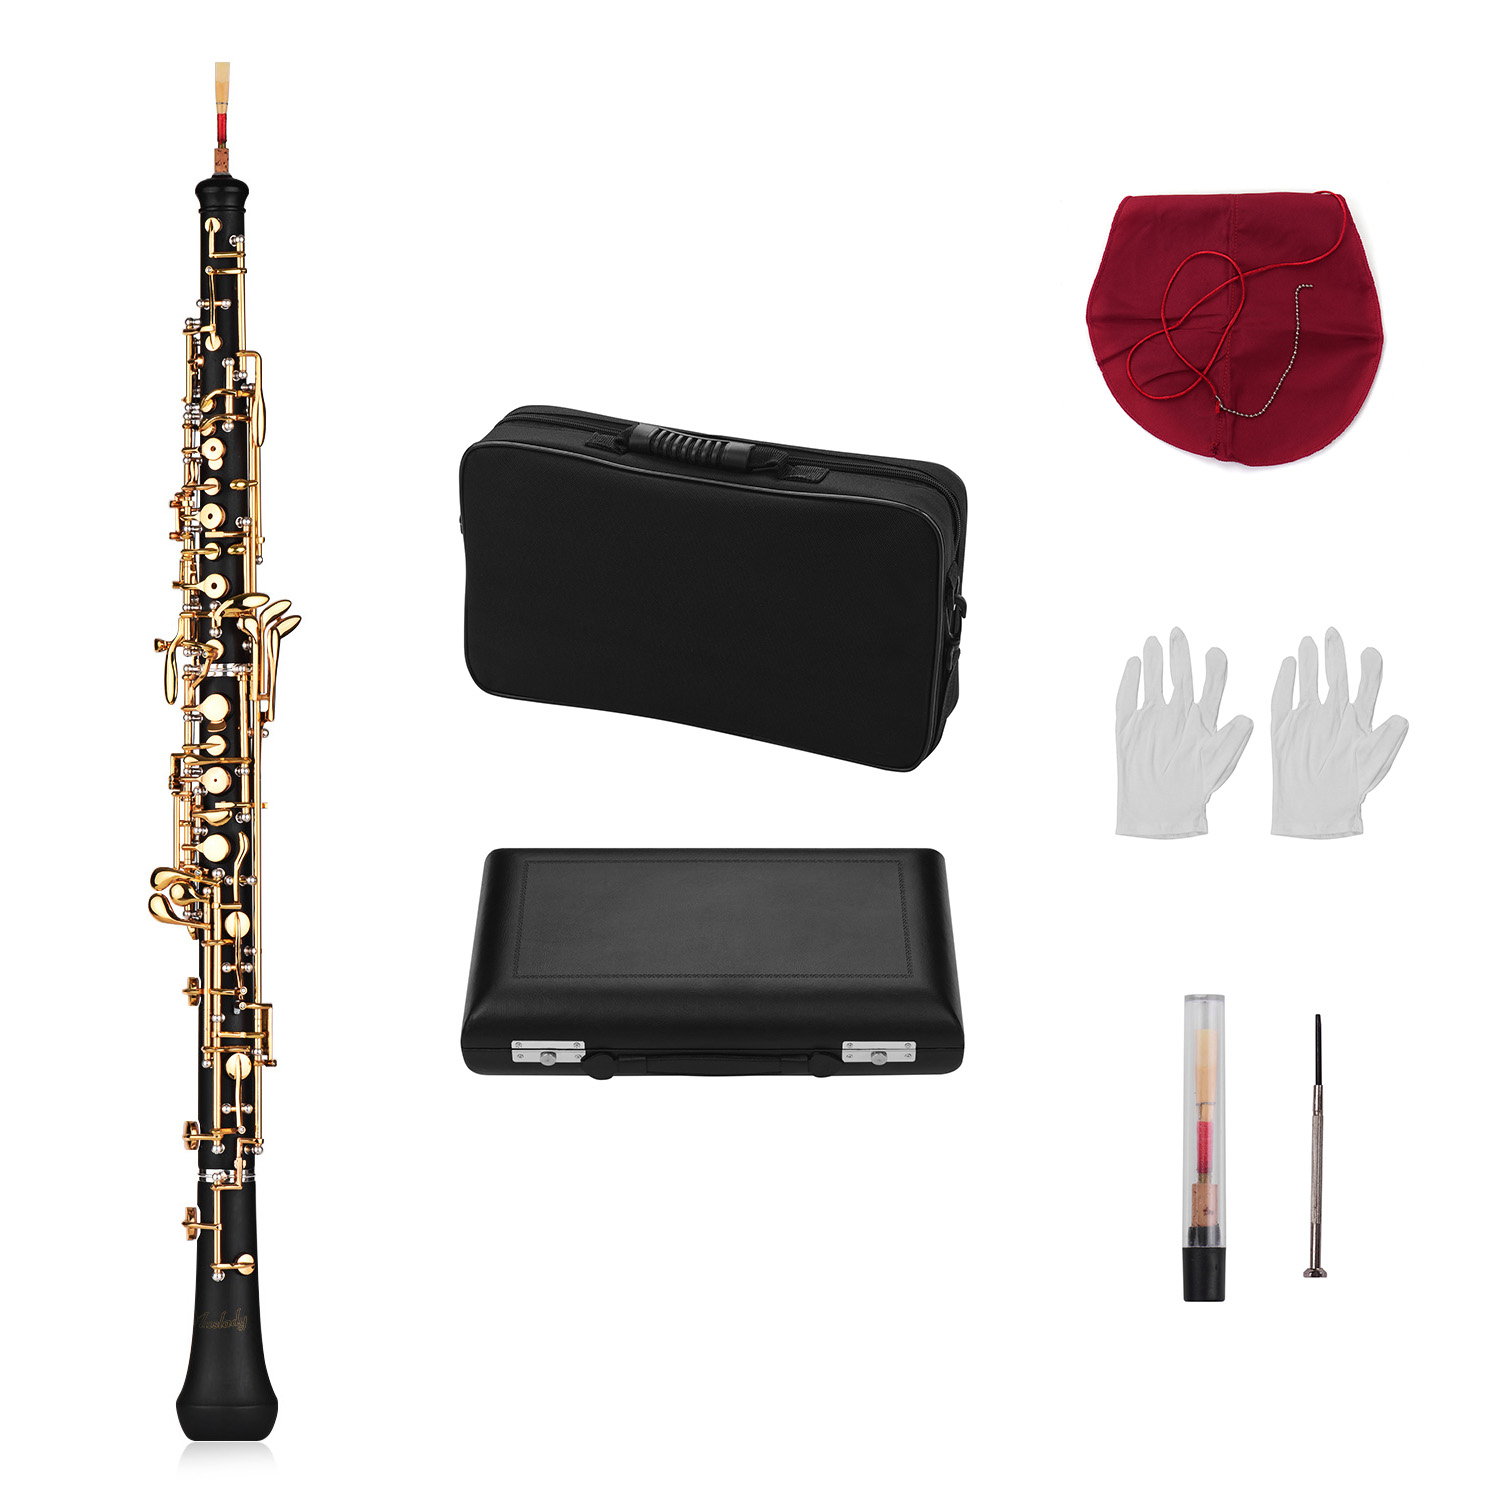 Muslady Professional C Key Oboe Semi-automatic Style Woodwind Instrument With Oboe Reed Gloves Leather Case Carry Bag